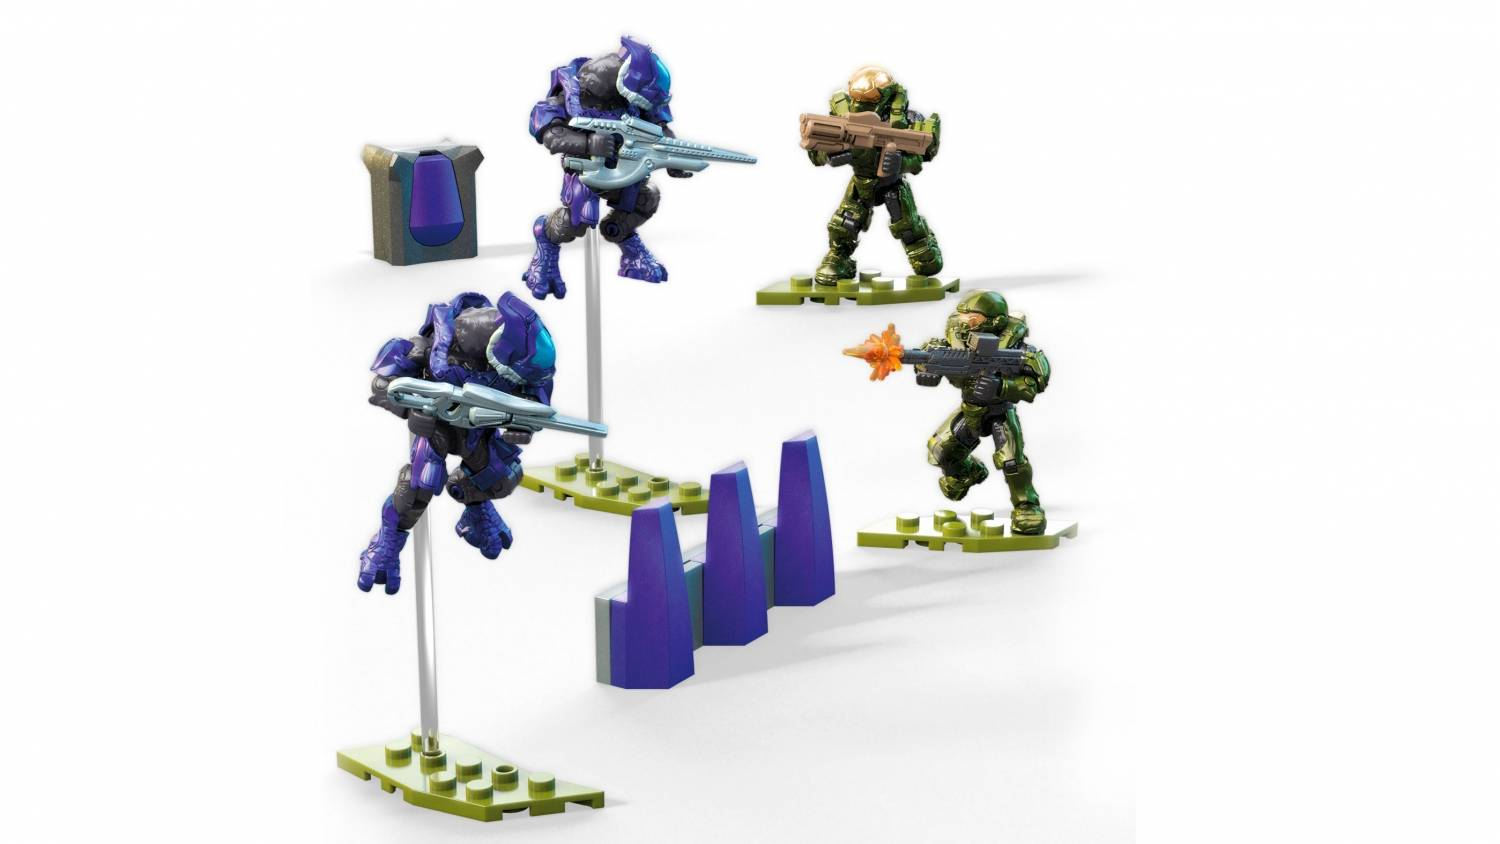 Spartan-IV Team Battle